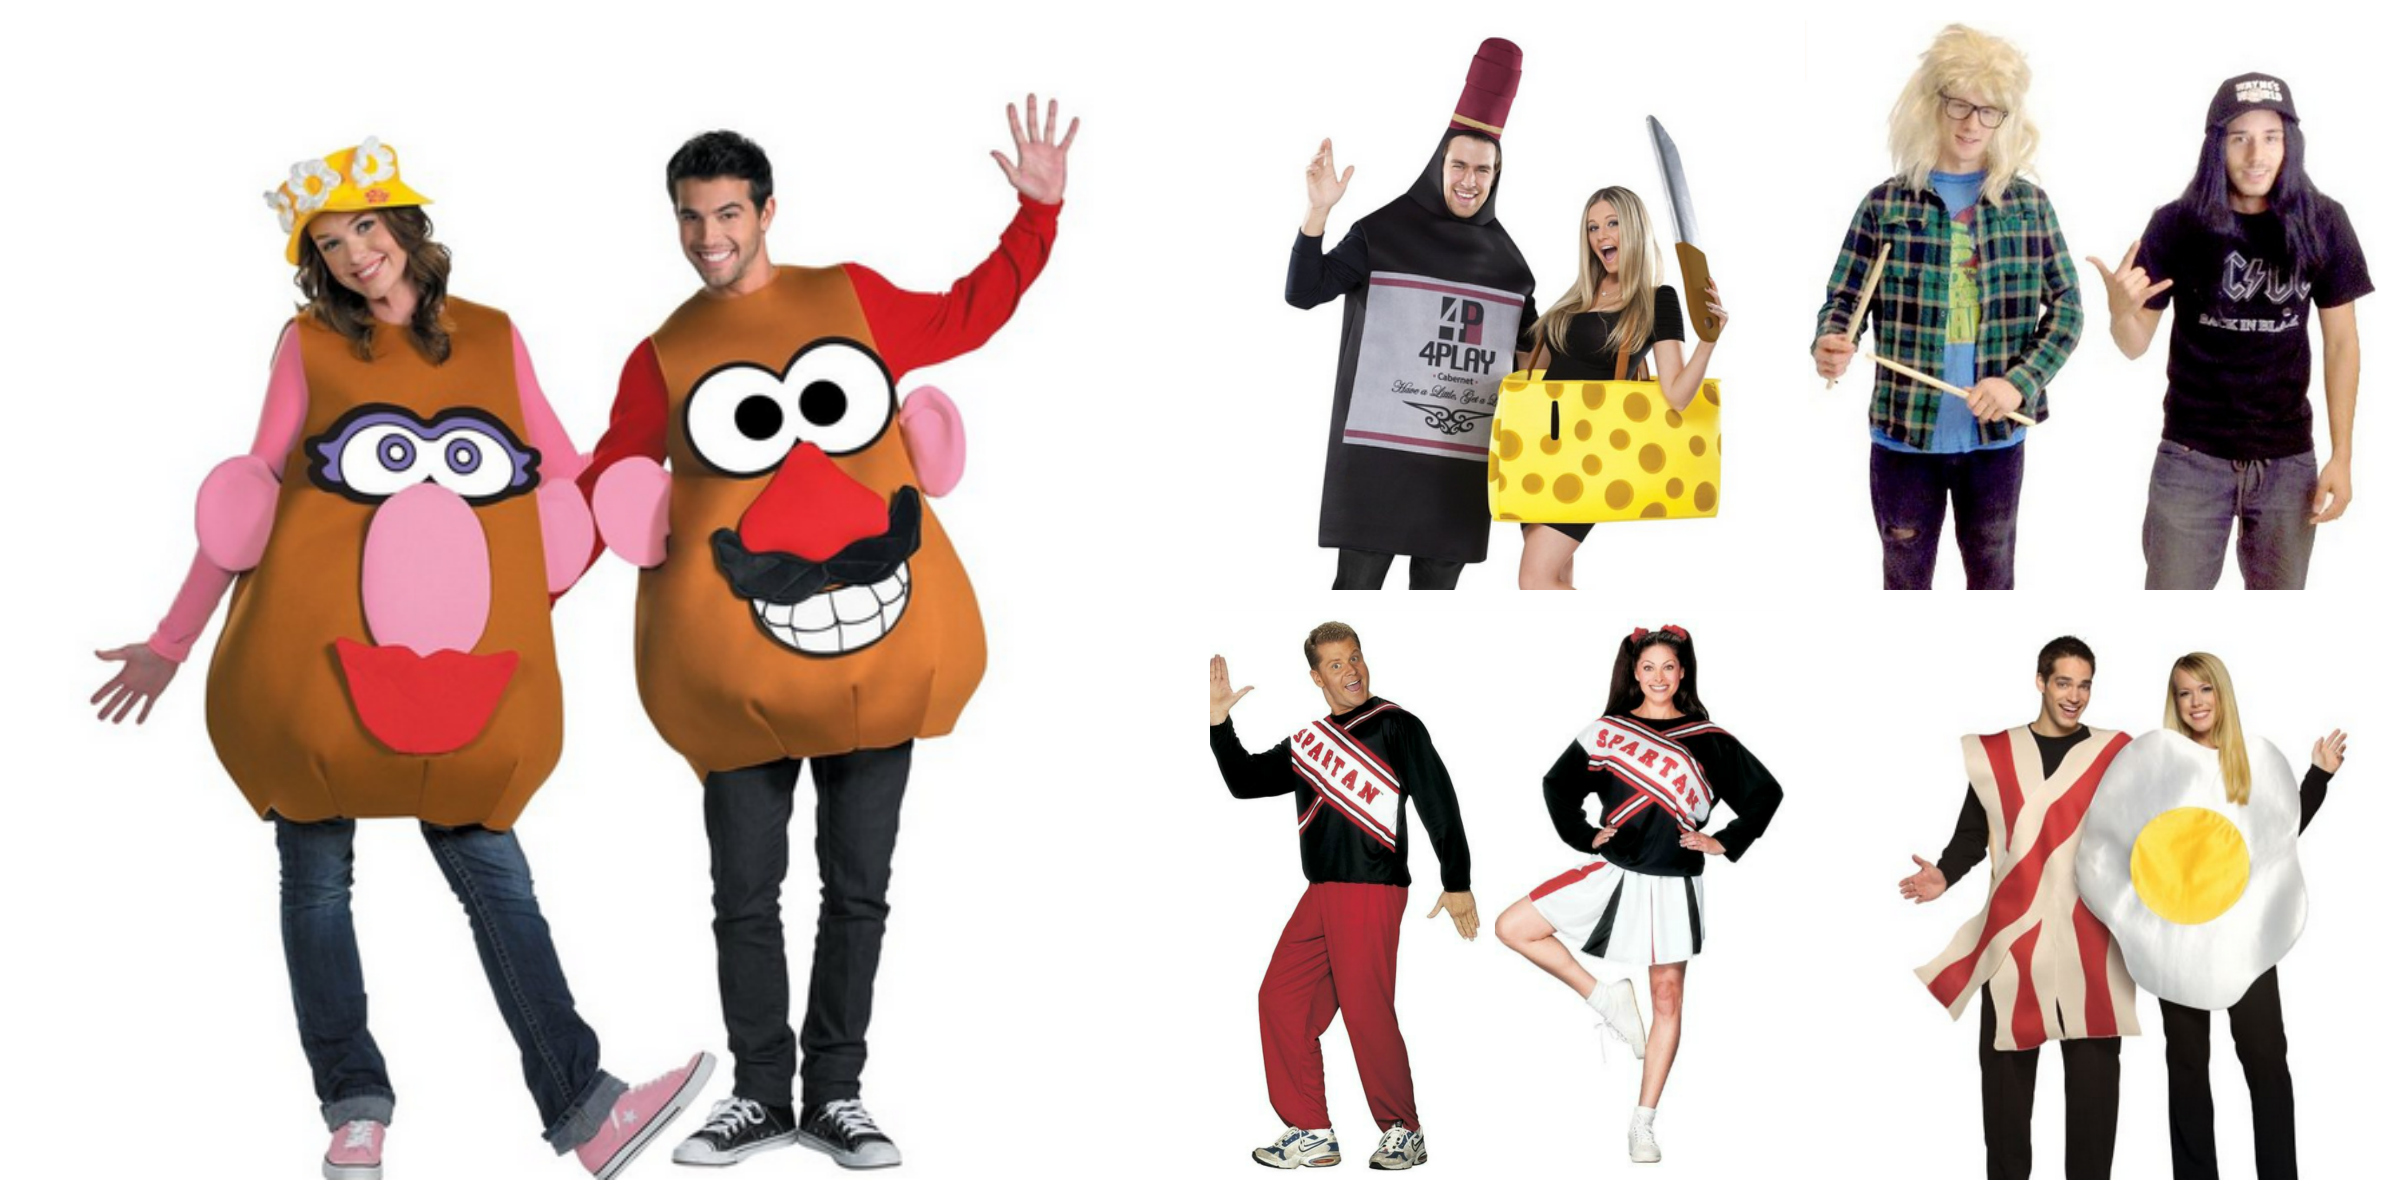 Unique Halloween 2015 Easy Couples Costumes To Obsess Over This Halloween Aol Lifestyle Ny Couple Halloween Costumes 2015 Halloween Costumes 2015 Couples Costumes nice food Funny Halloween Costumes 2015